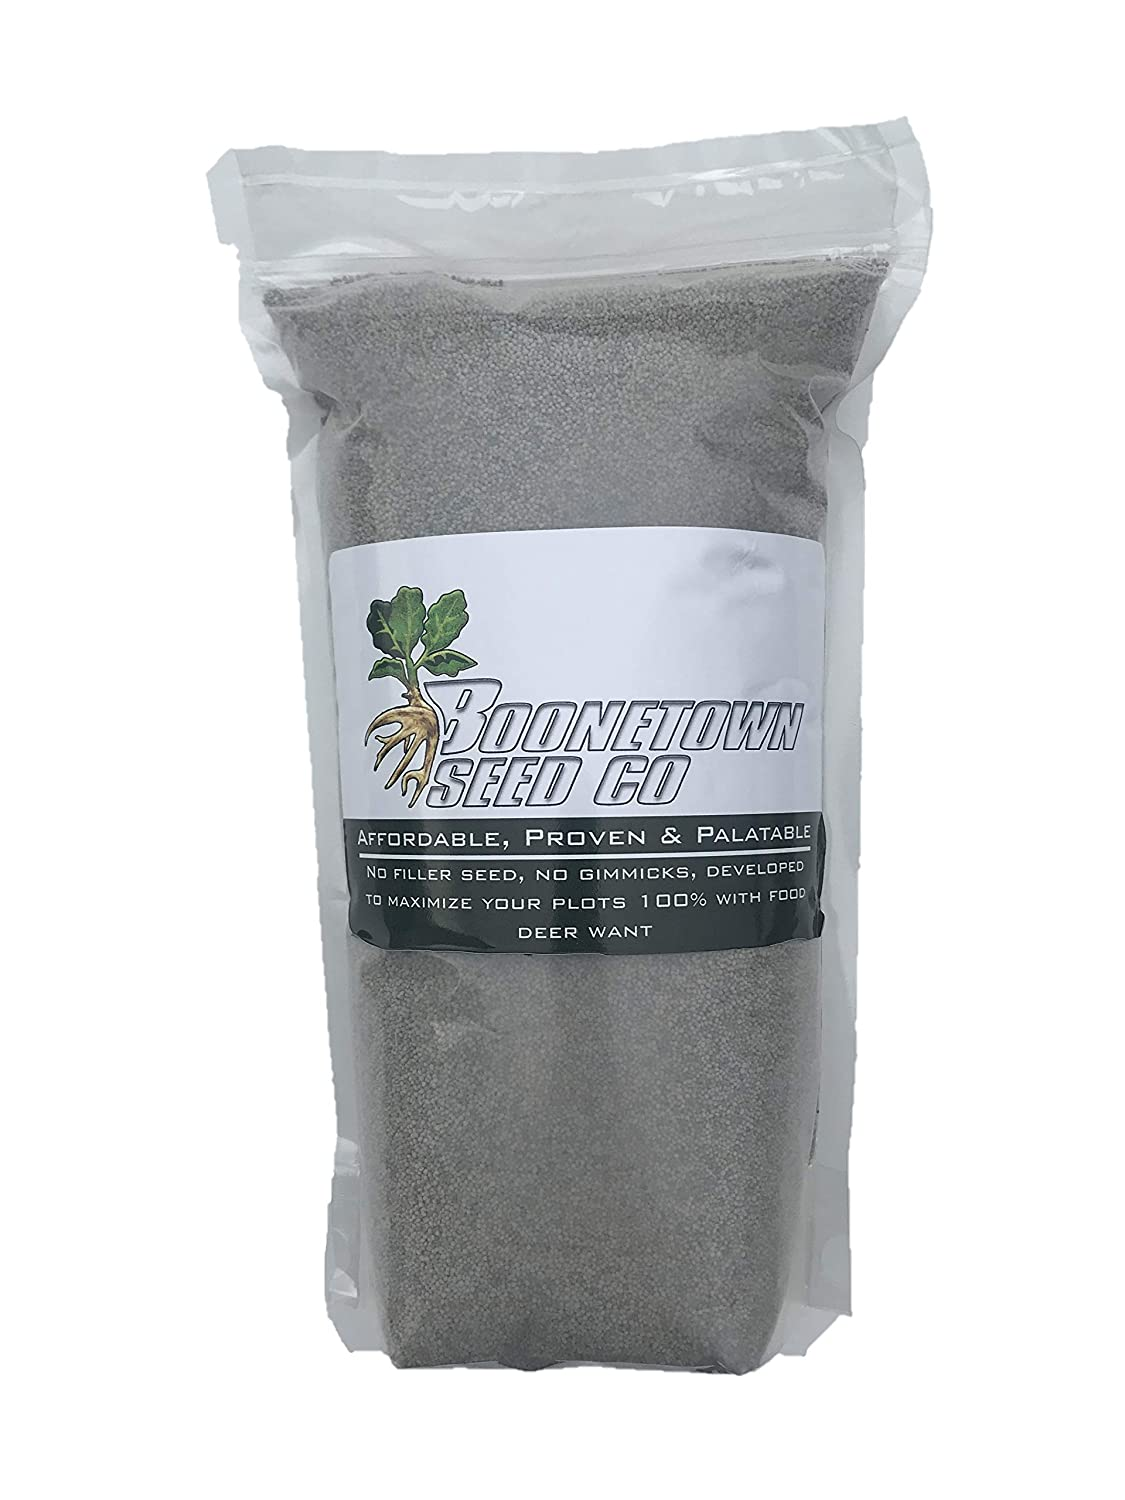 Boonetown Seed White Clover Seed Blend, 4 LB Bag .5 Acre Coverage, Lucky 4 Leaf White Dutch, Durana, and Premium Ladino Clover, Food plot Seeds for Planting for Deer or lawns